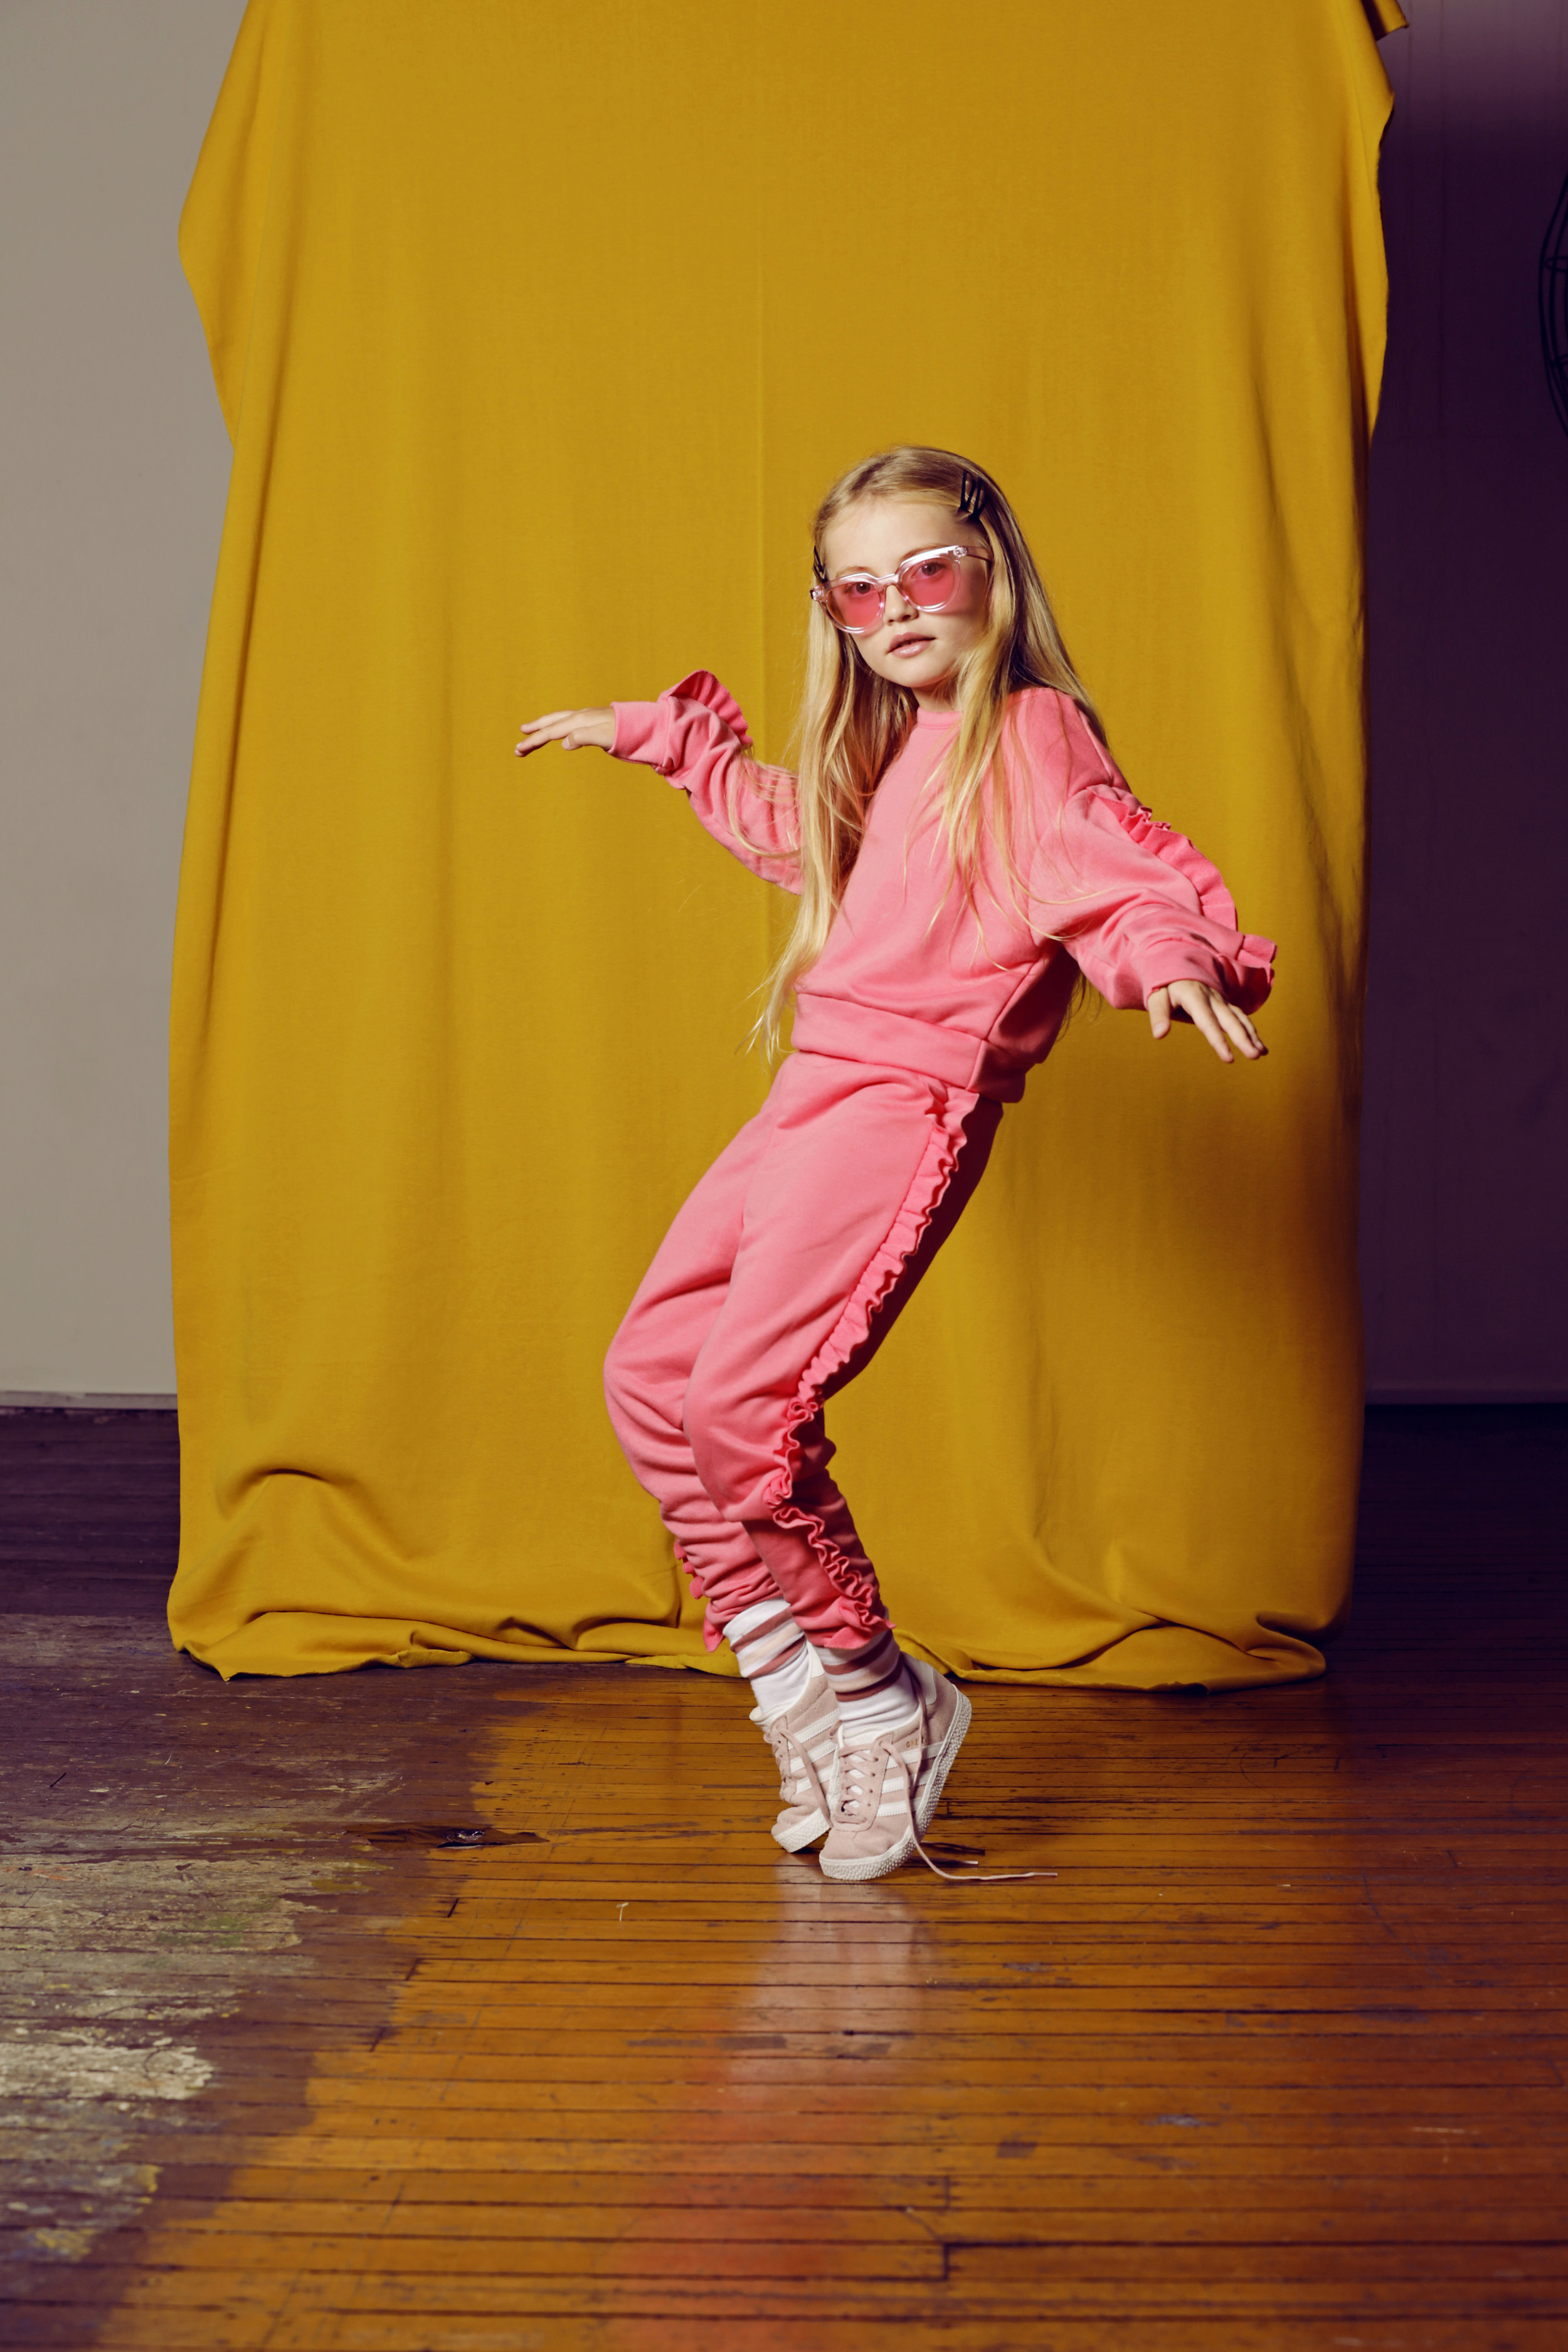 Funny Face Editorial